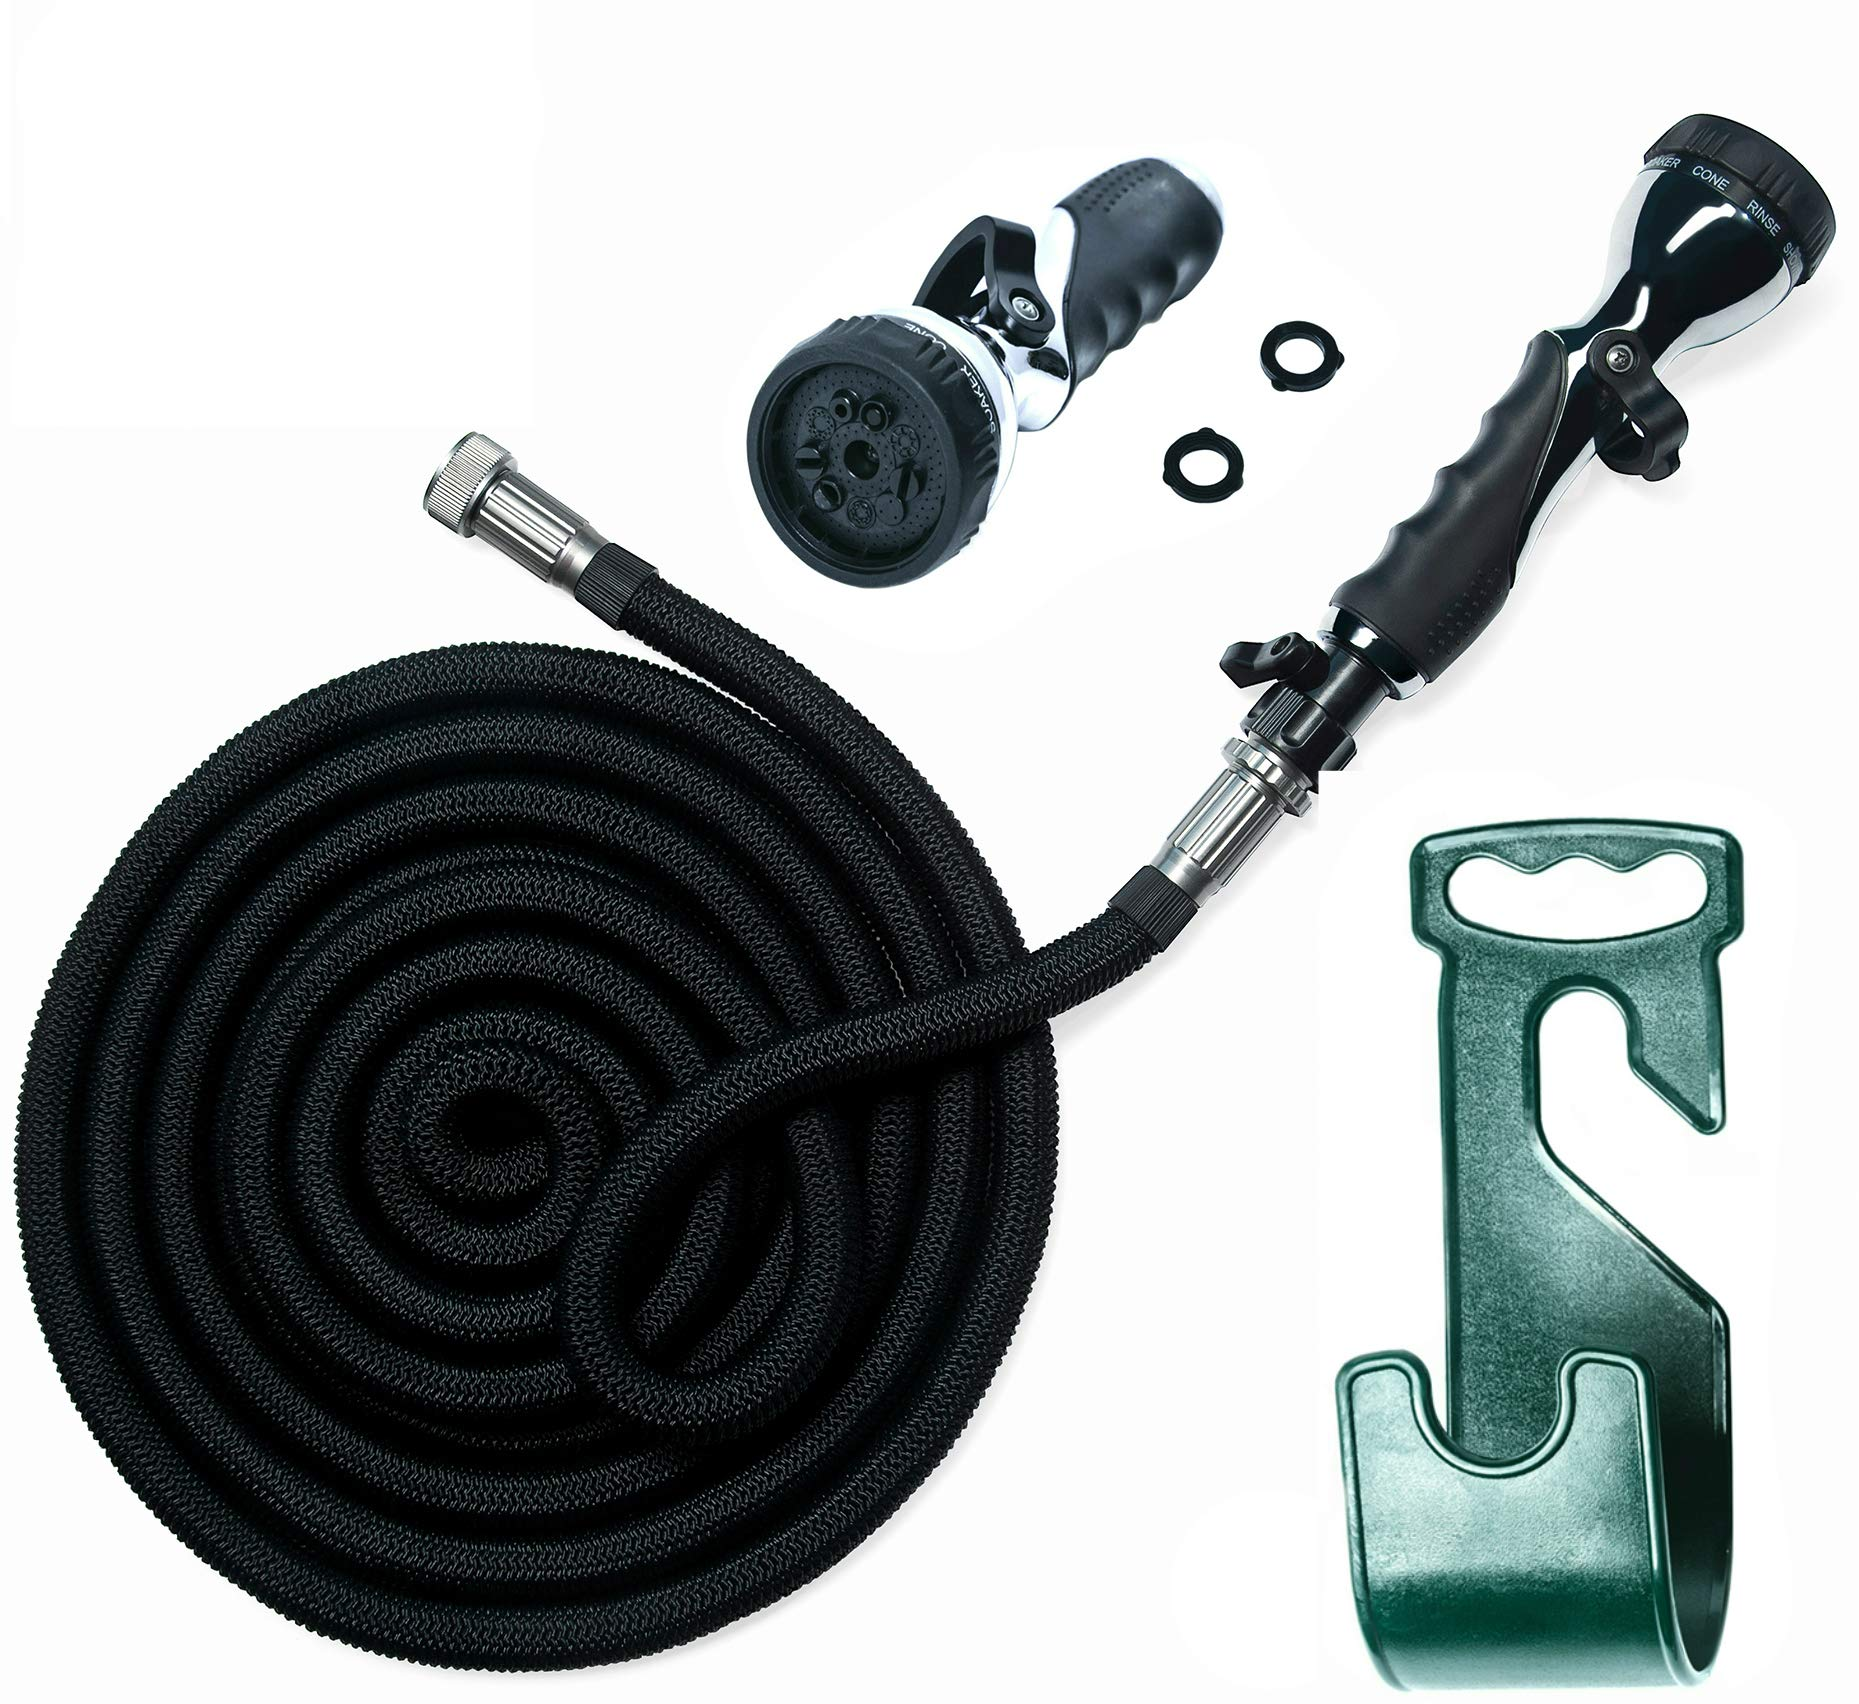 Vela Water Hose – 75 Feet Expandable Garden Hose - Hose Holder & High Pressure Washer Spray Nozzle With 9 Settings – Best As Seen on TV Heavy Duty Kink Free Flex Hose for Car Washing & Watering Hose